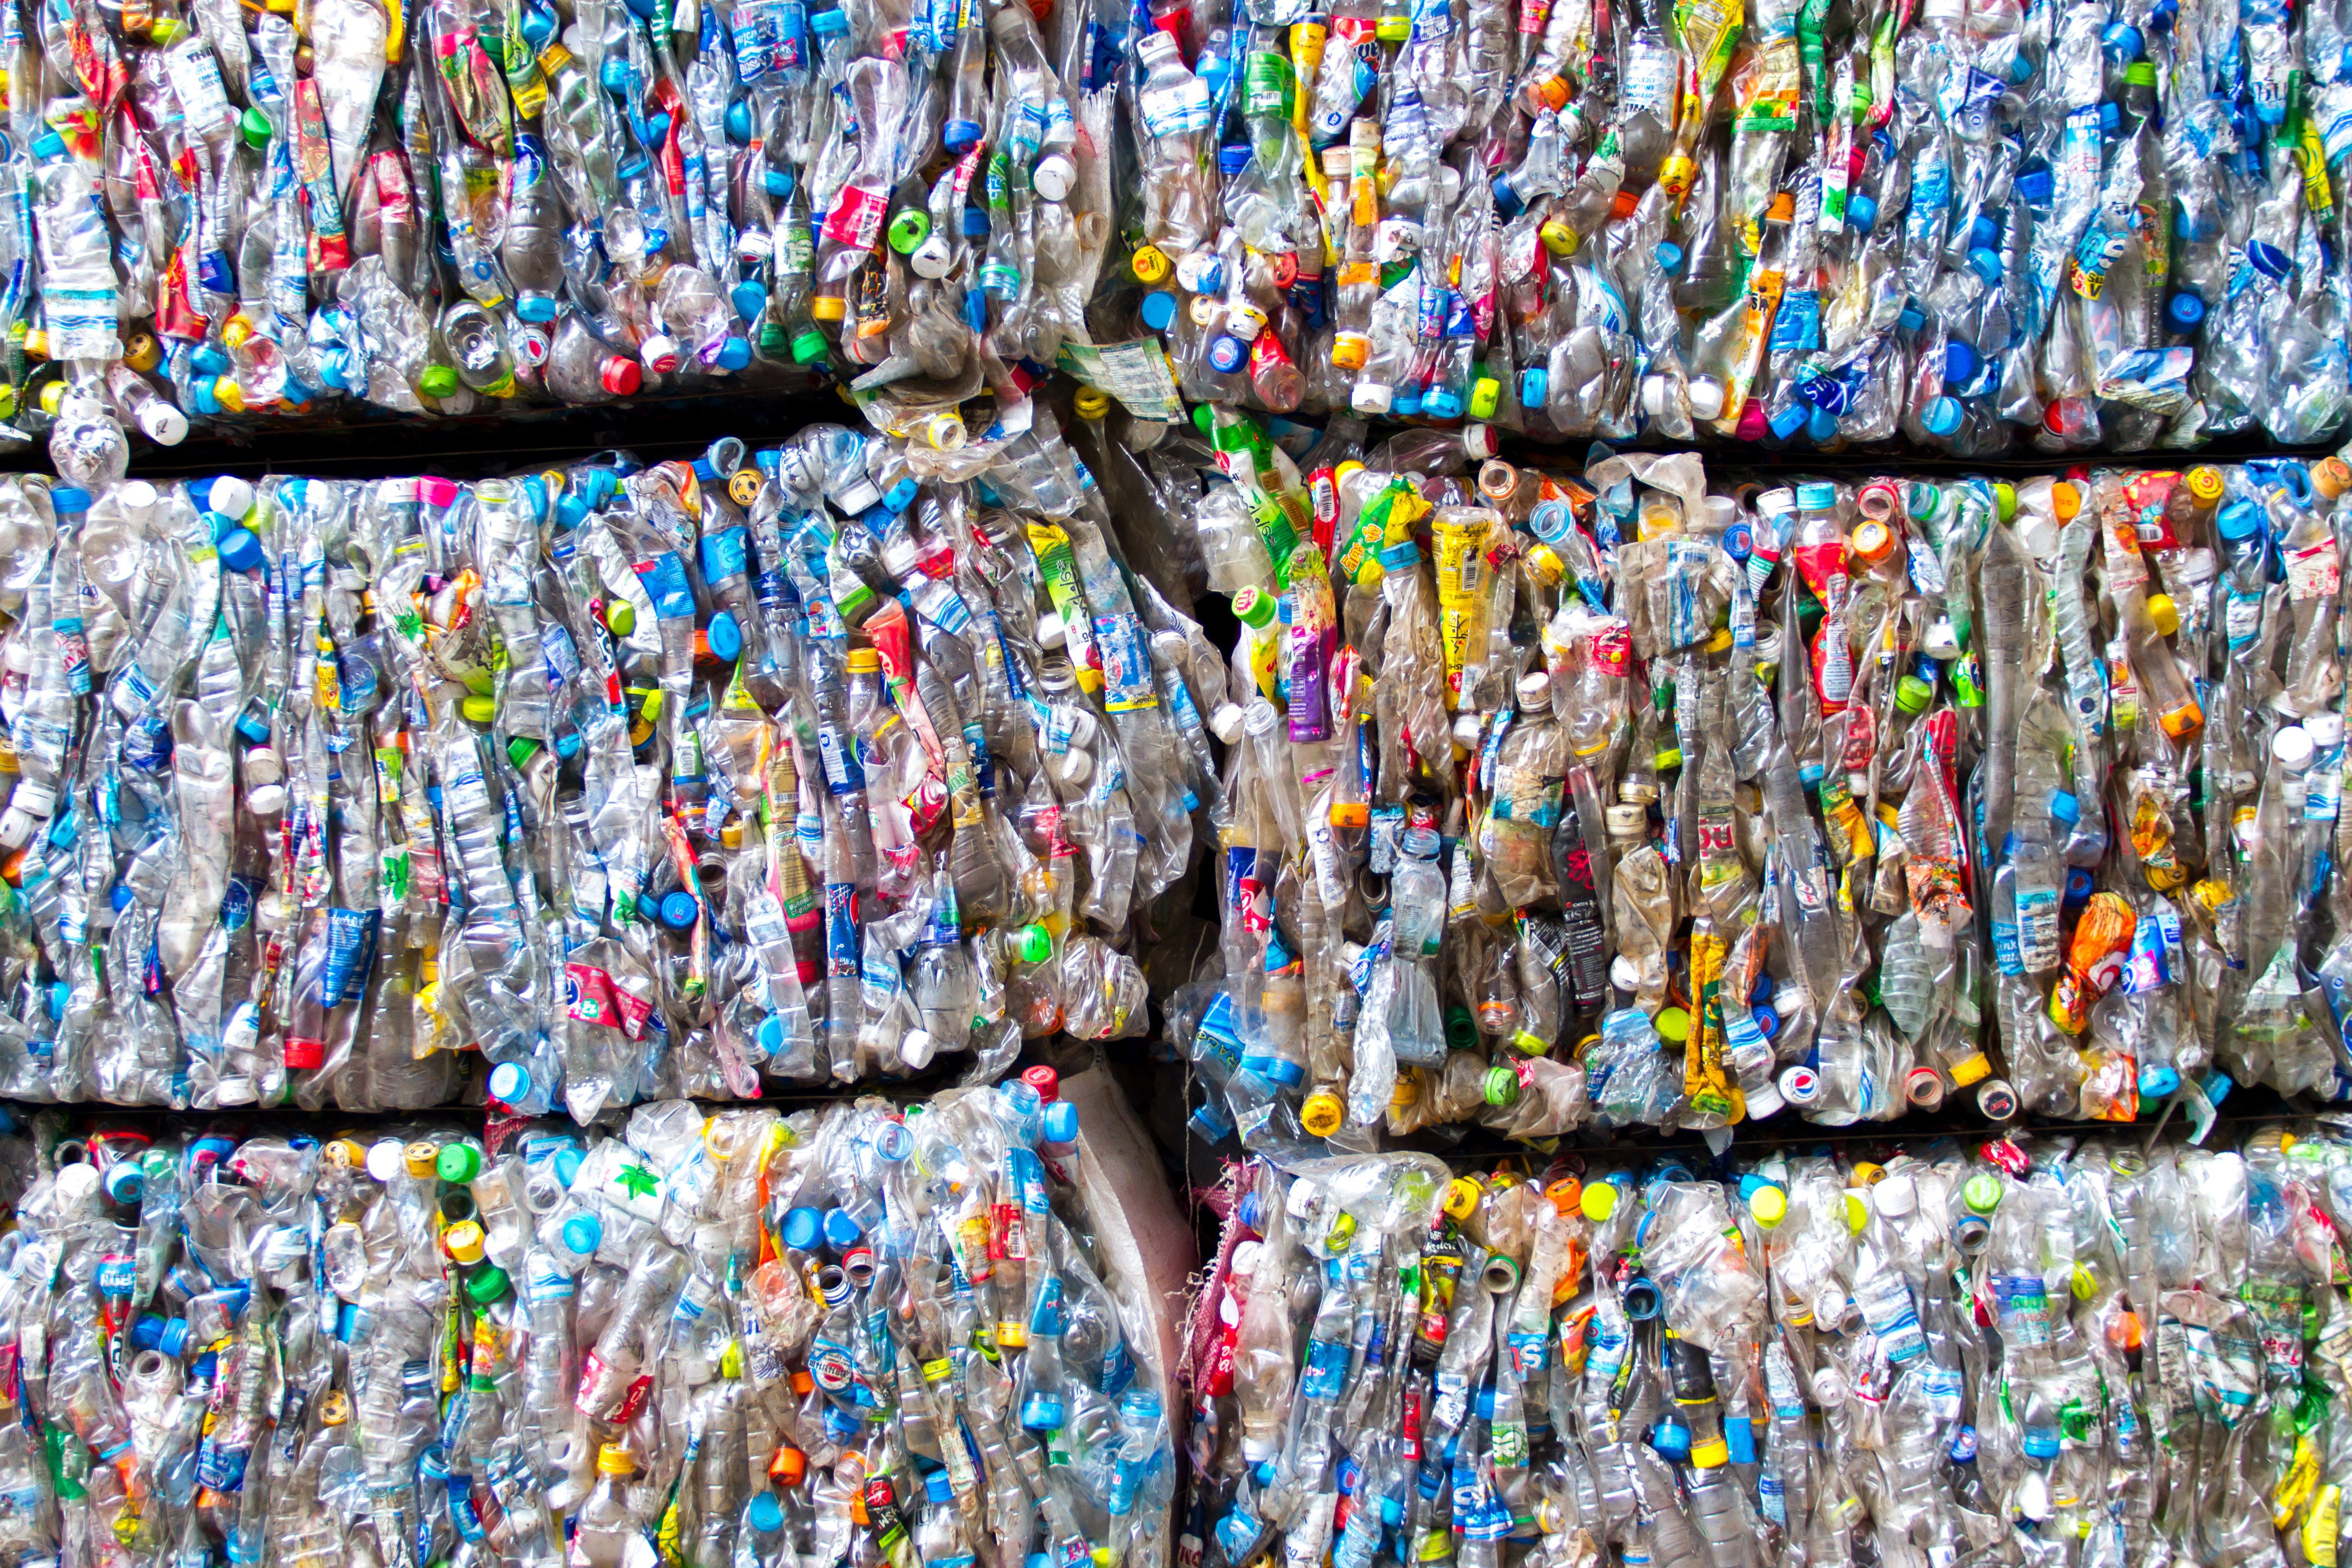 Humanity Has Produced 9.1 Billion Tonnes Of Plastic, And We've Recycled Just 10% Of